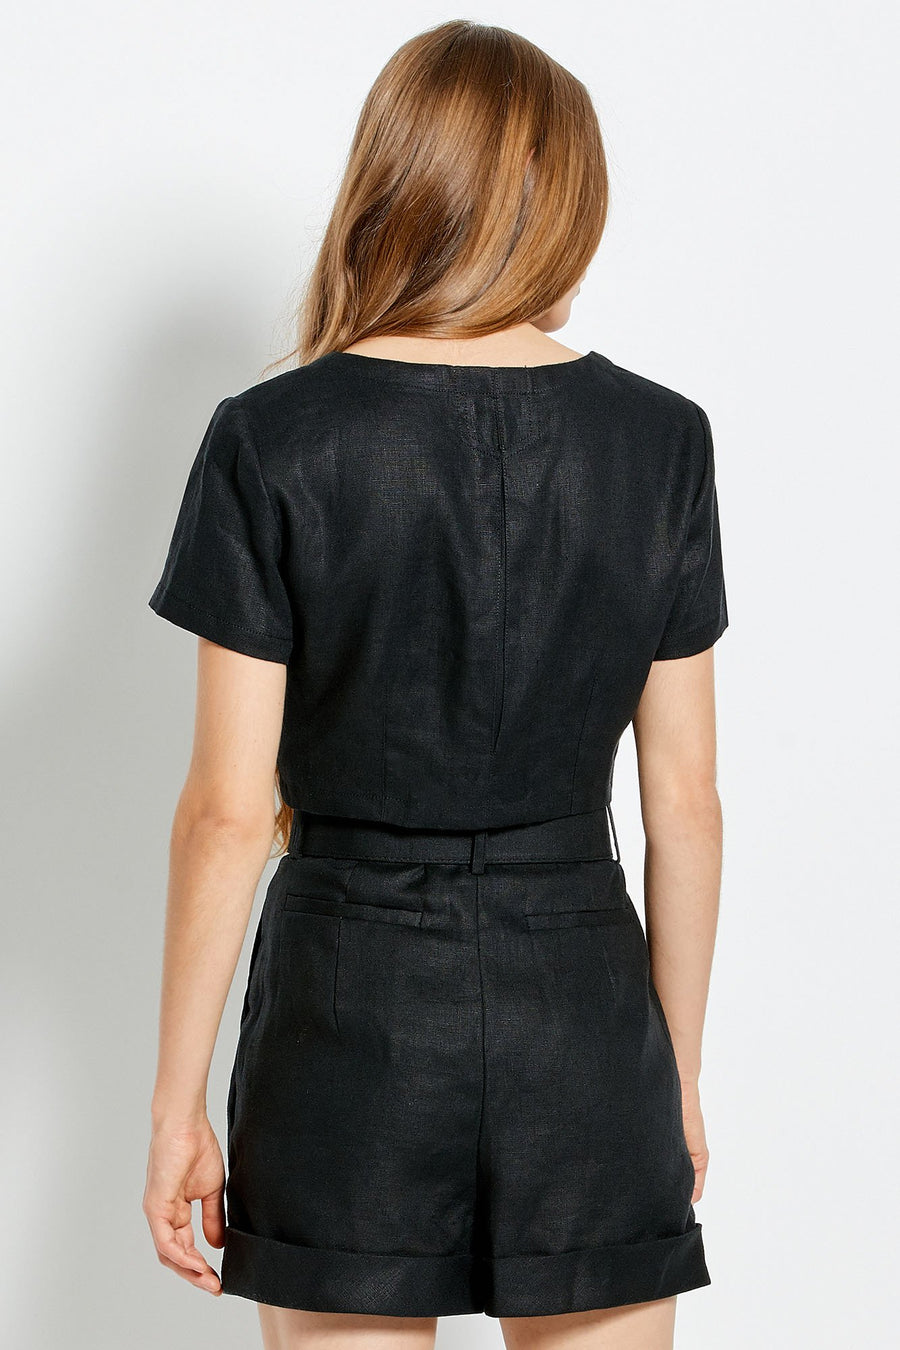 Lou Top - Black